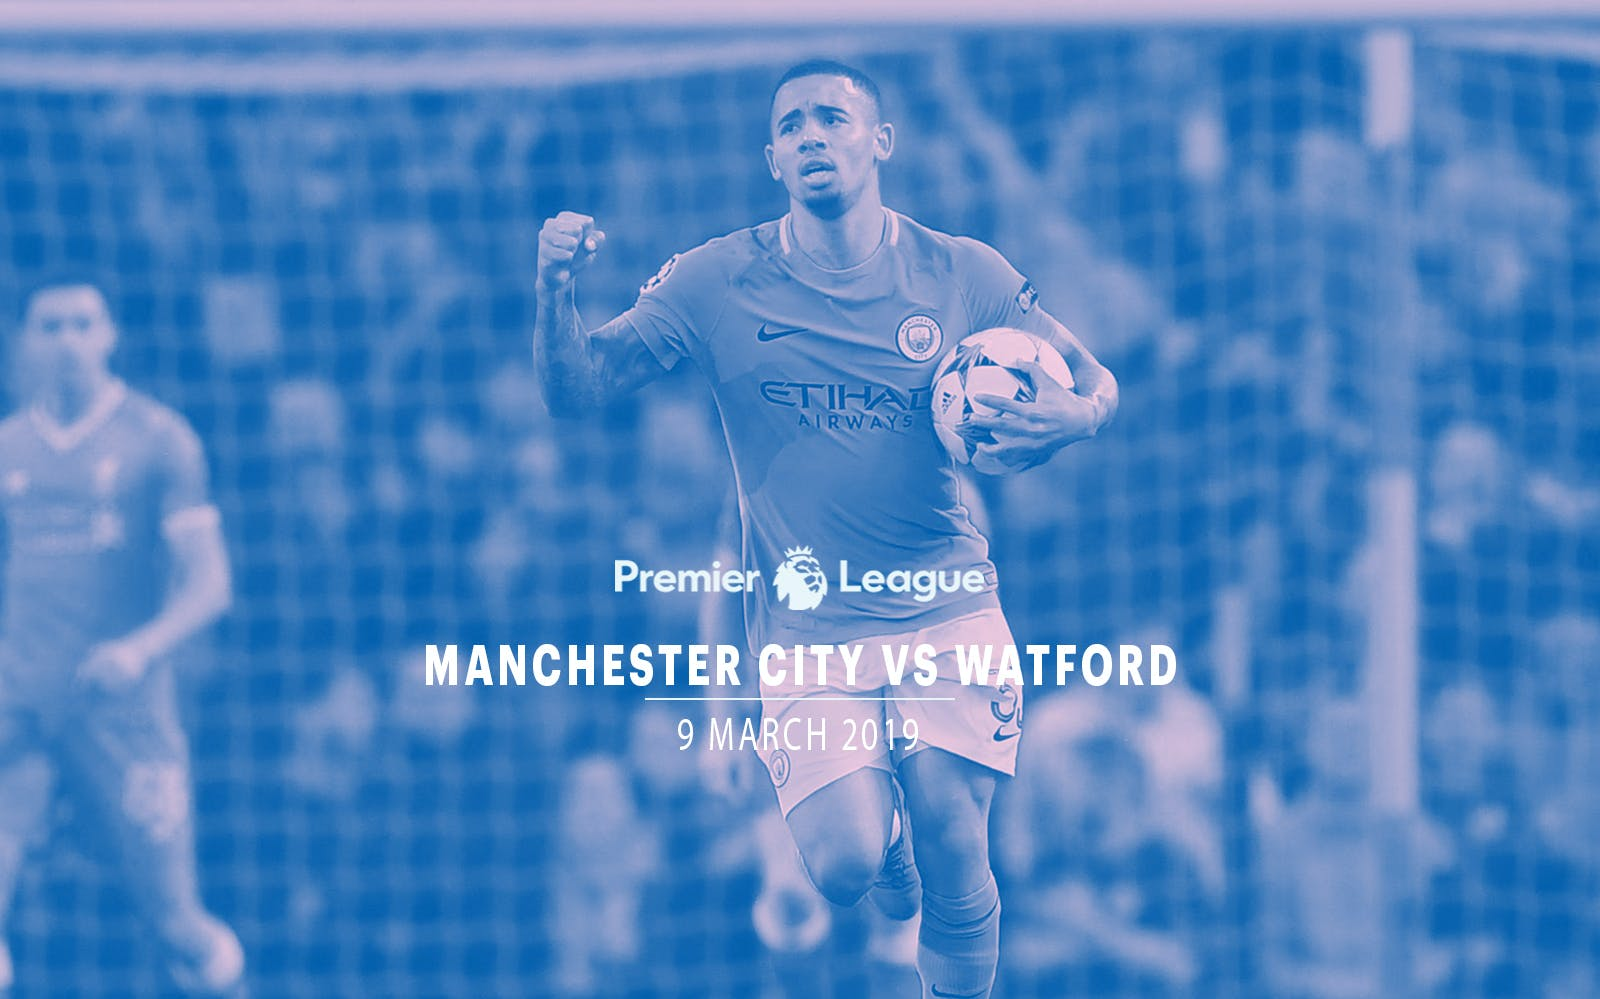 manchester city vs watford-9th mar2019 -1